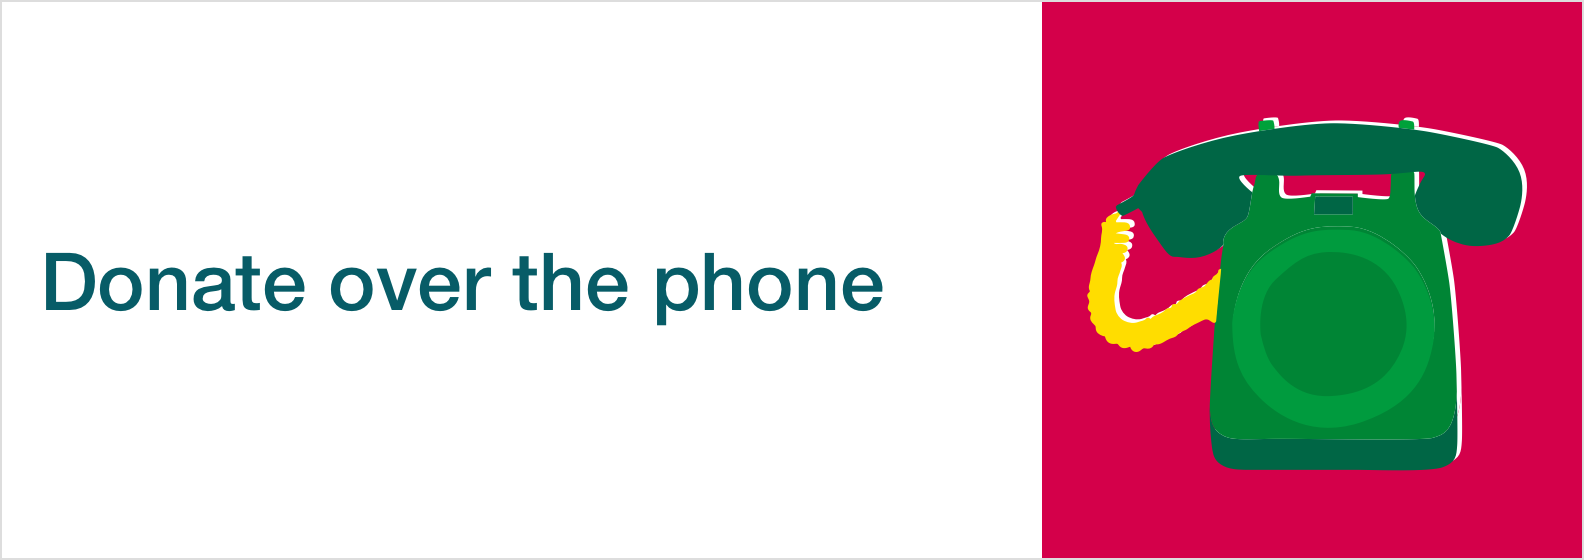 'Donate over the phone' written in green text on a white background. Next to it is a cartoon of a green telephone on a red background.